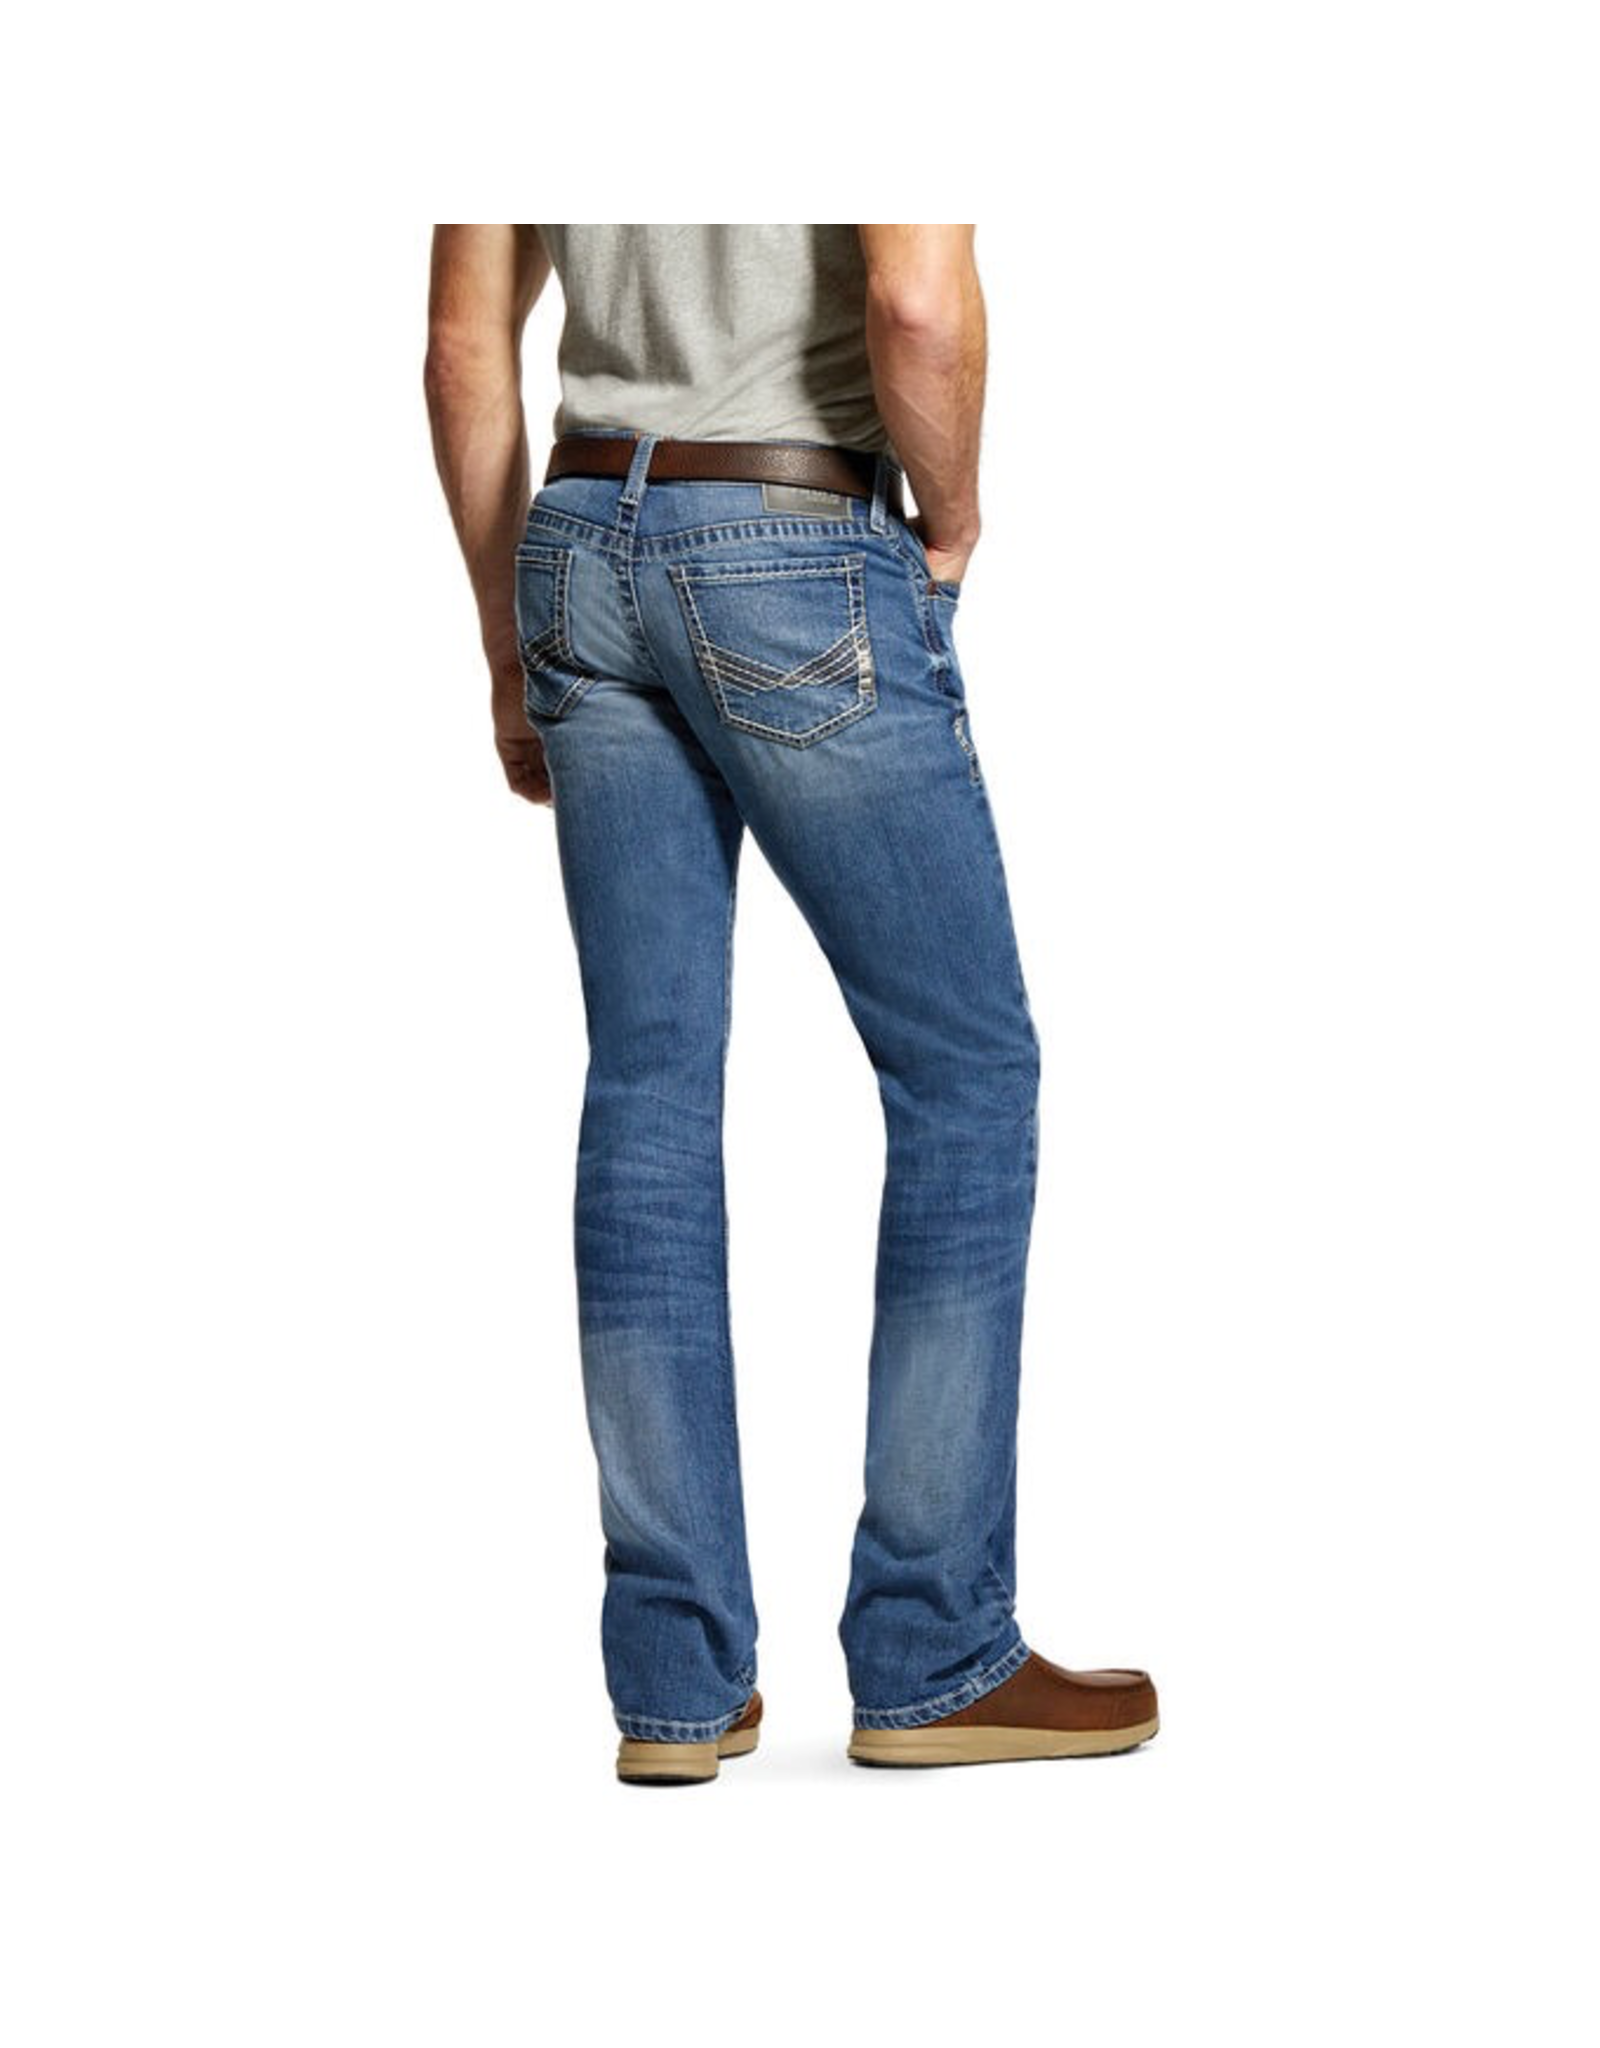 Jeans-Men Ariat 10028926 M7 Extra Slim Straight